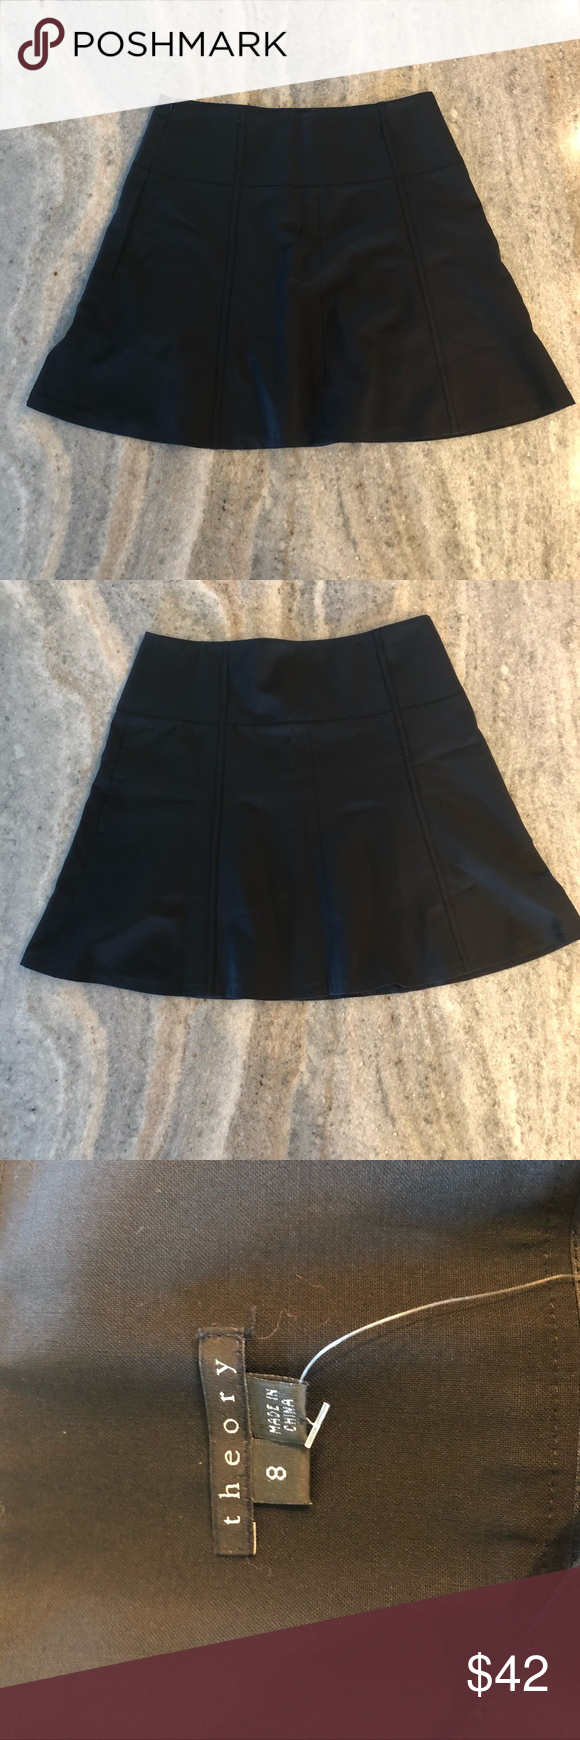 "10b6e86ca8 Theory Black A-Line Flare Short Skirt Size 8 EUC Theory Black A-Line Flare  Short Skirt EUC—Missing Fabric Tag Size 8—Approx Measurements Length 18""  Waist ..."